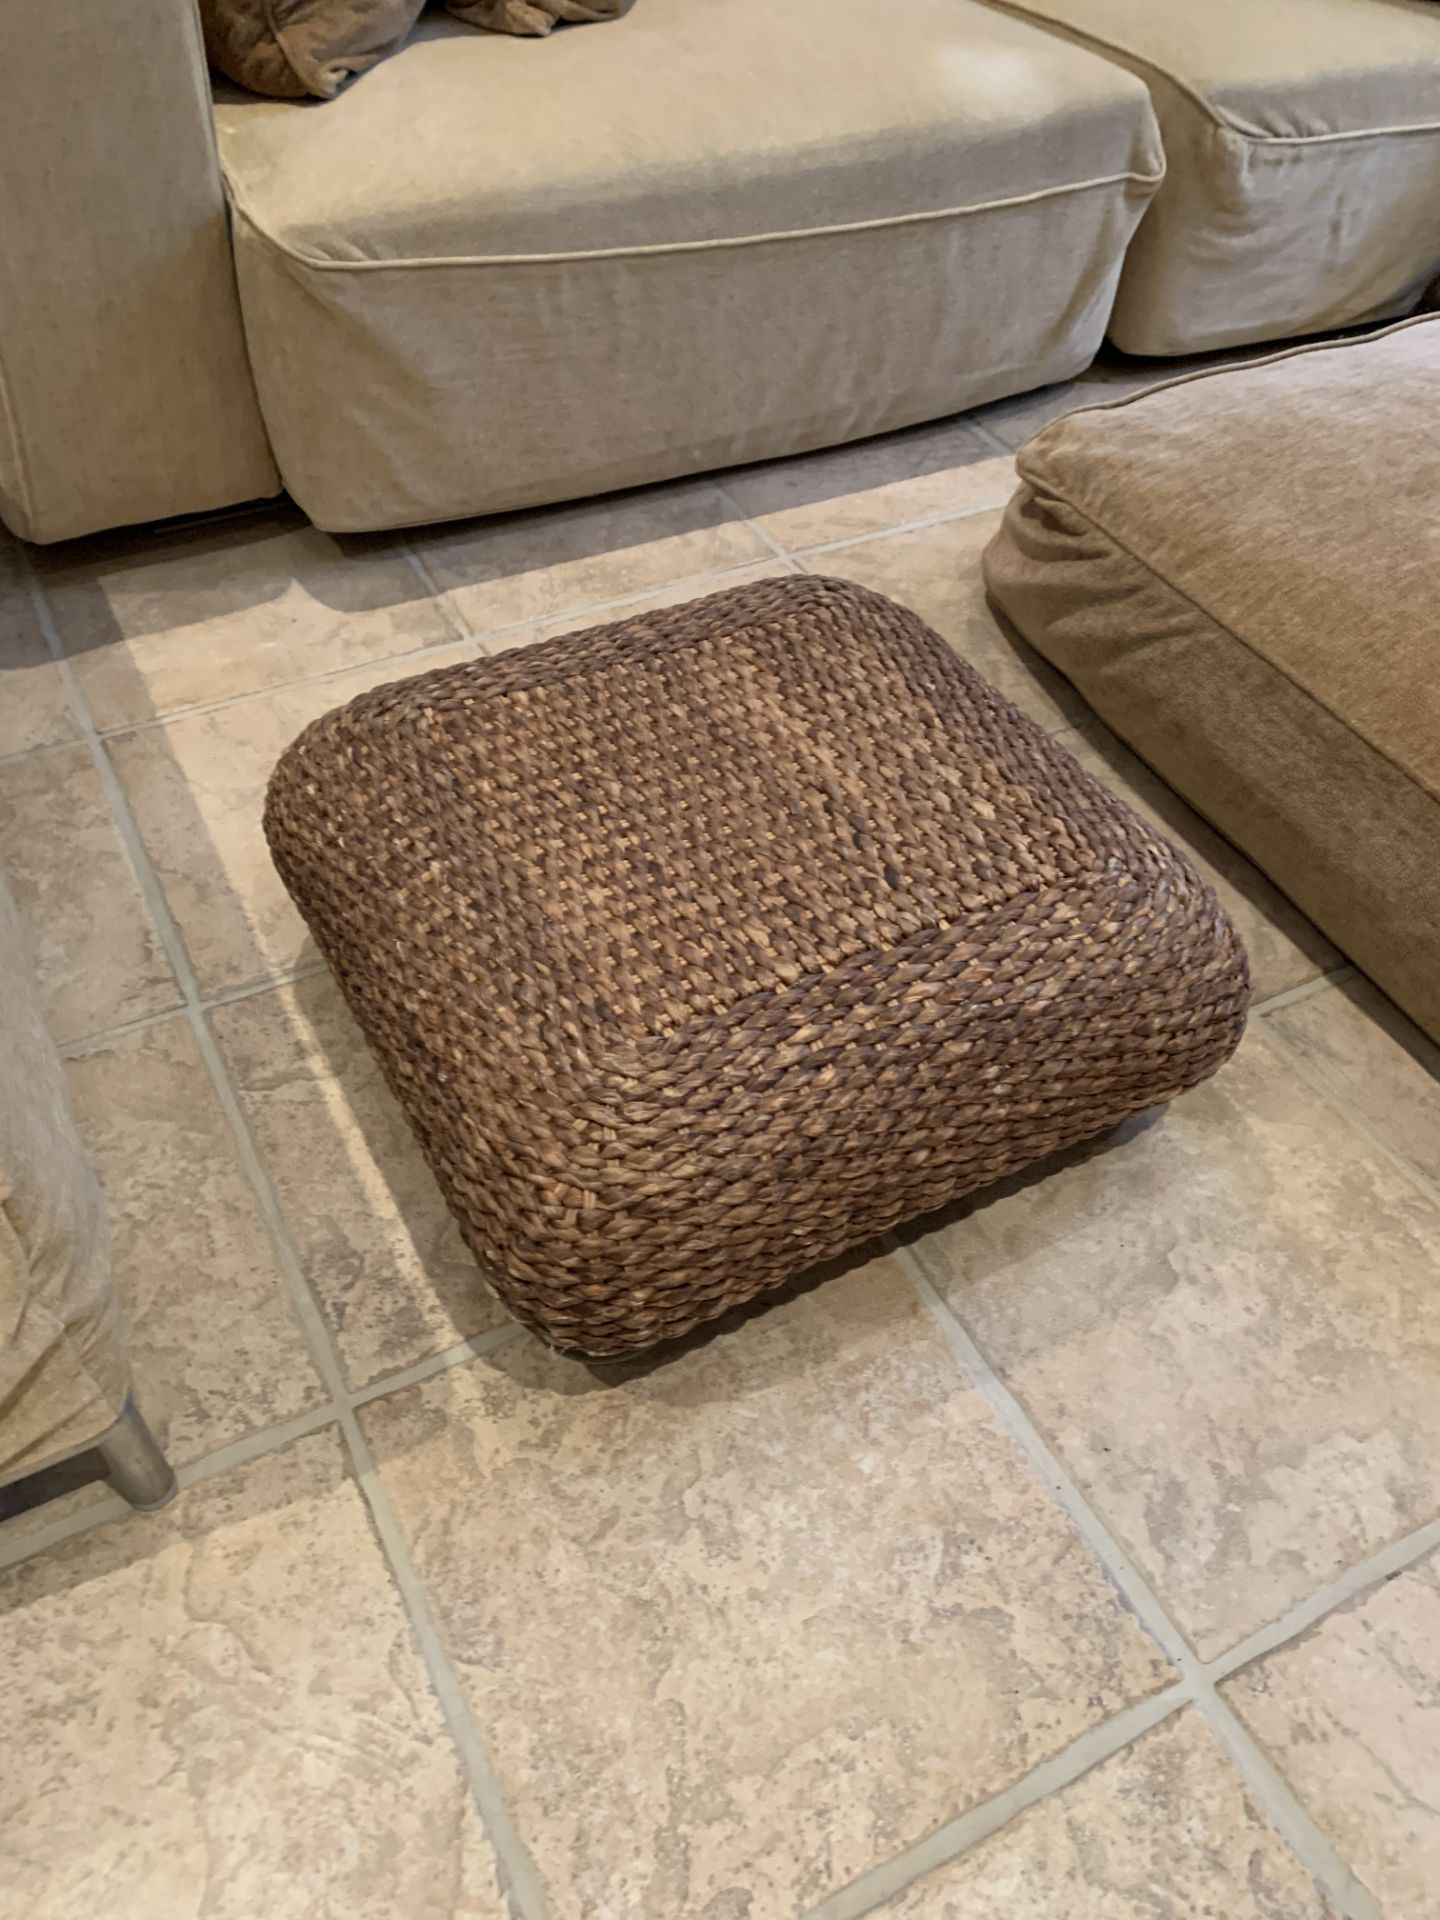 Light brown sofa, a light brown day bed, light brown floor cushion and a rattan stool - Image 5 of 5